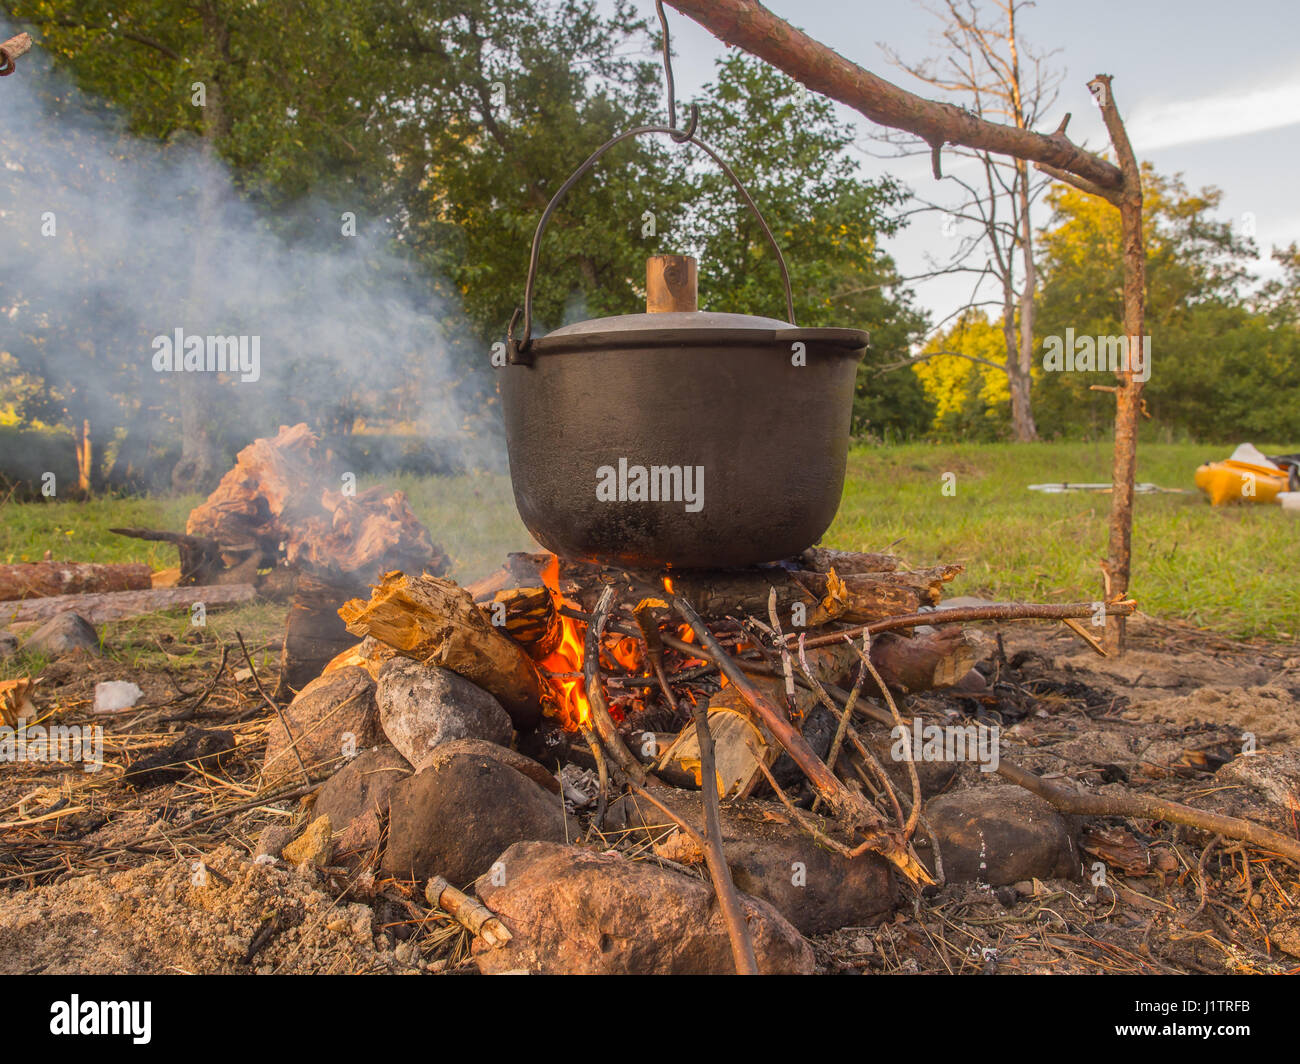 round campfire stockfotos round campfire bilder alamy. Black Bedroom Furniture Sets. Home Design Ideas